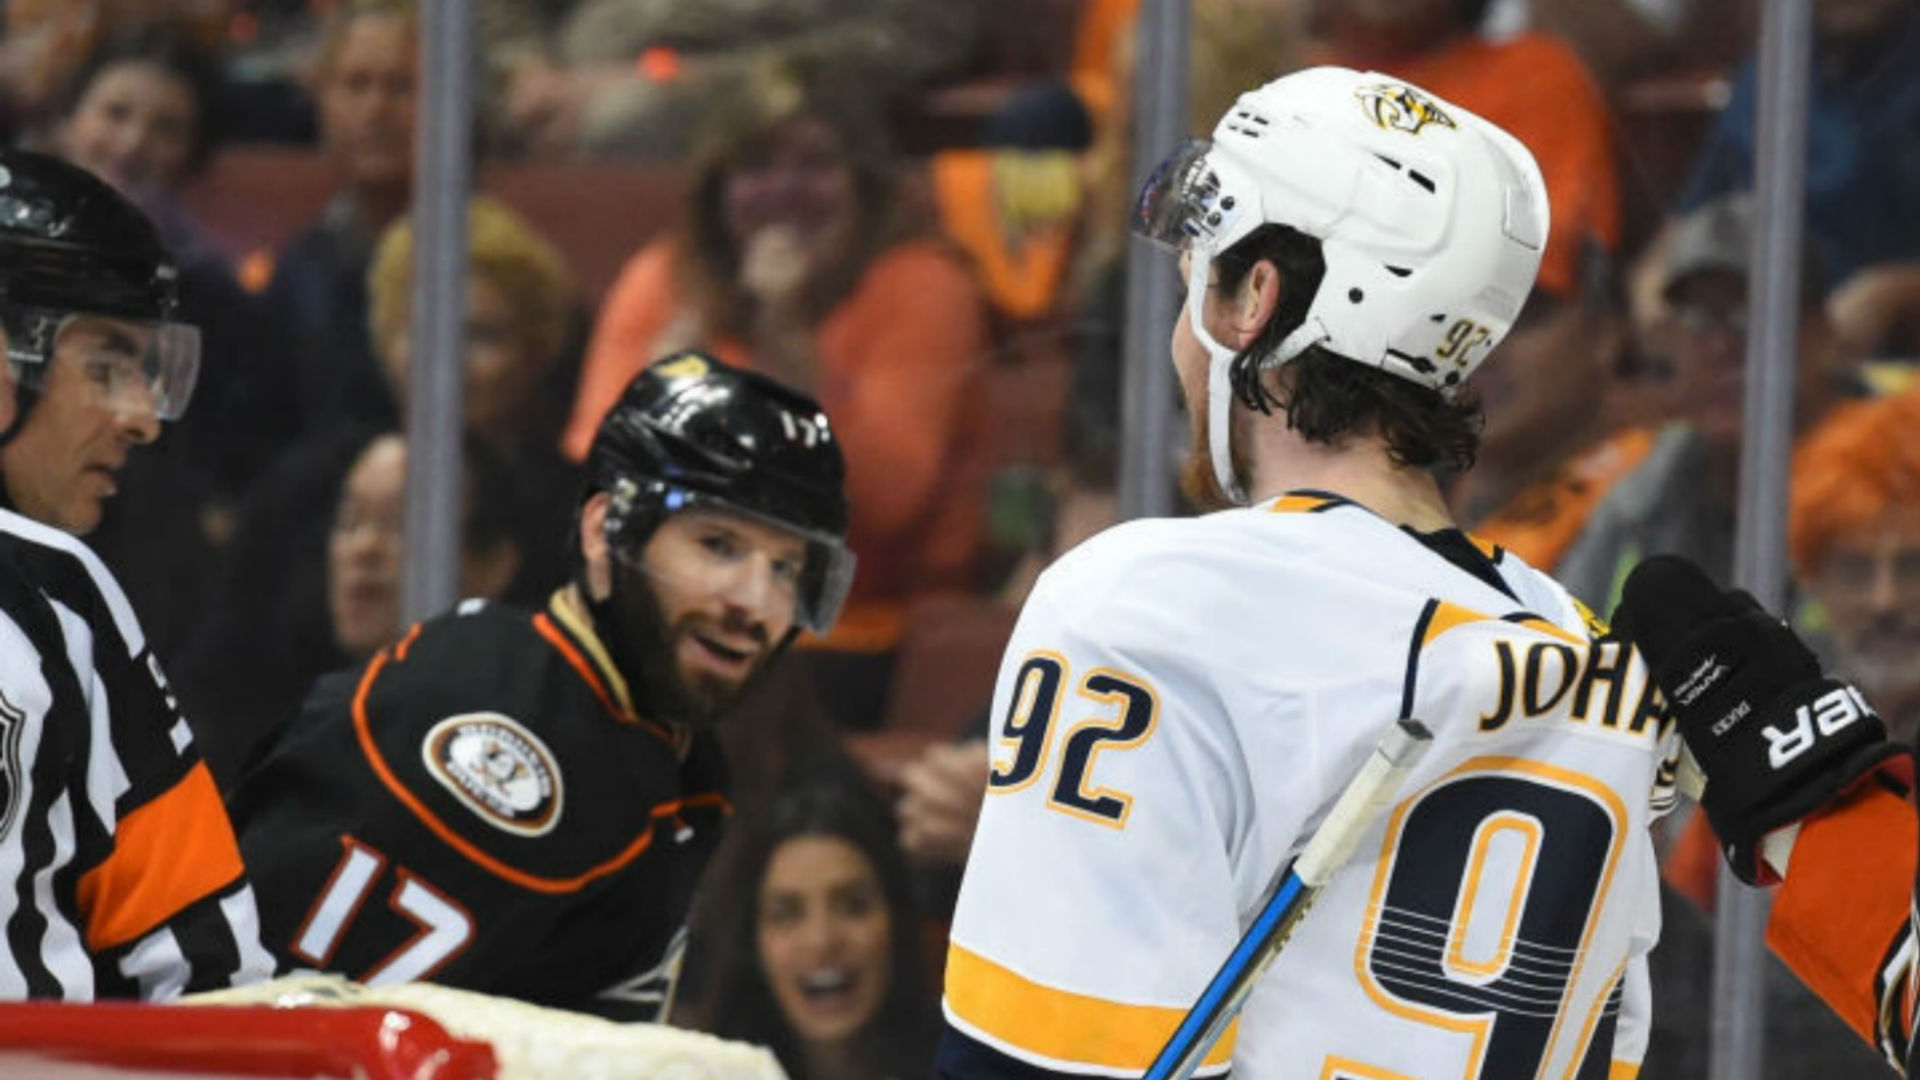 Rinne's rare off-night gives Ducks life in Western Conference Final